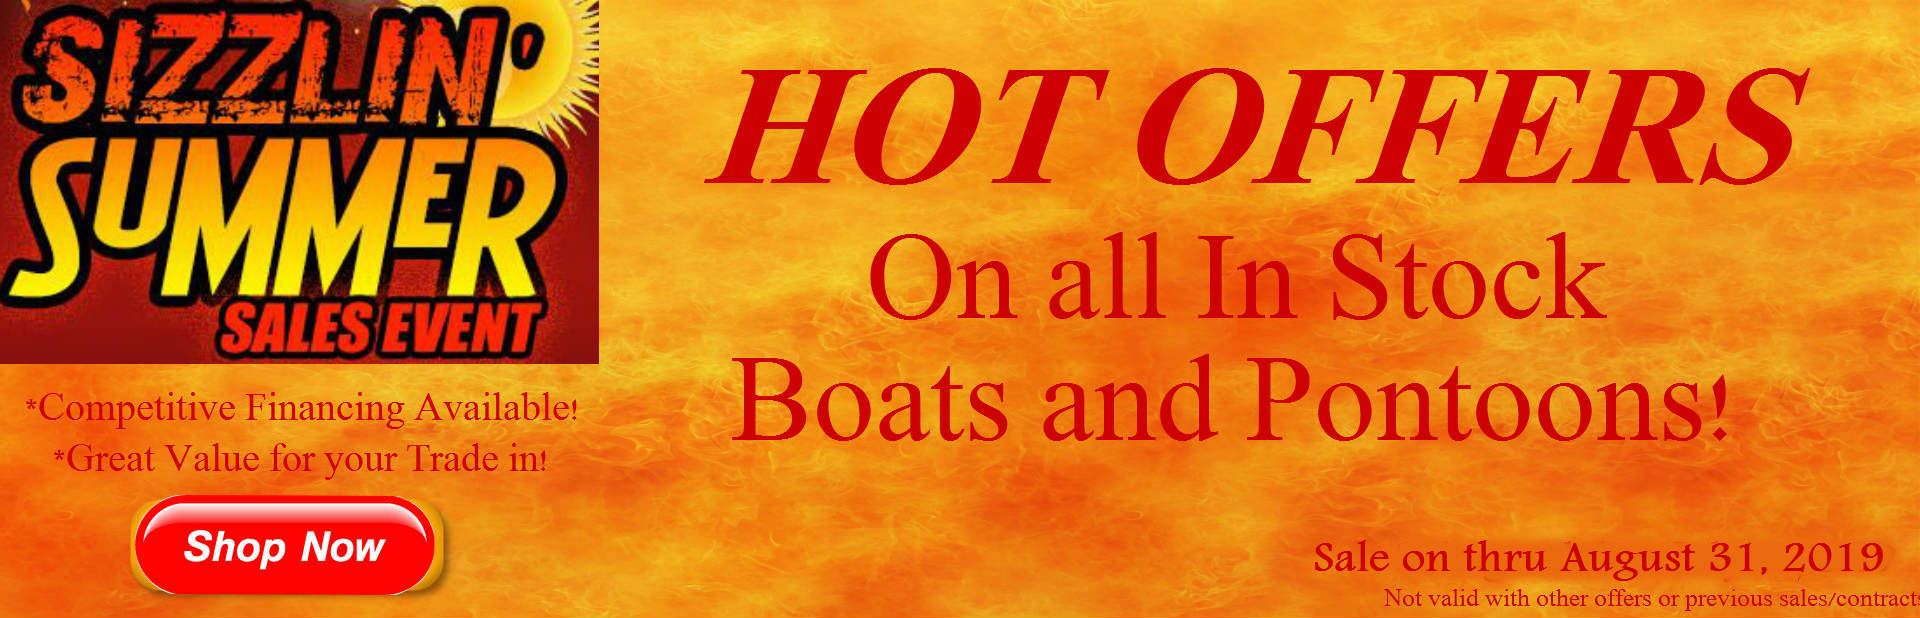 used aluminum boats, fiberglass boats, fishing boats, pontoons, used pontoon boats, sylvan